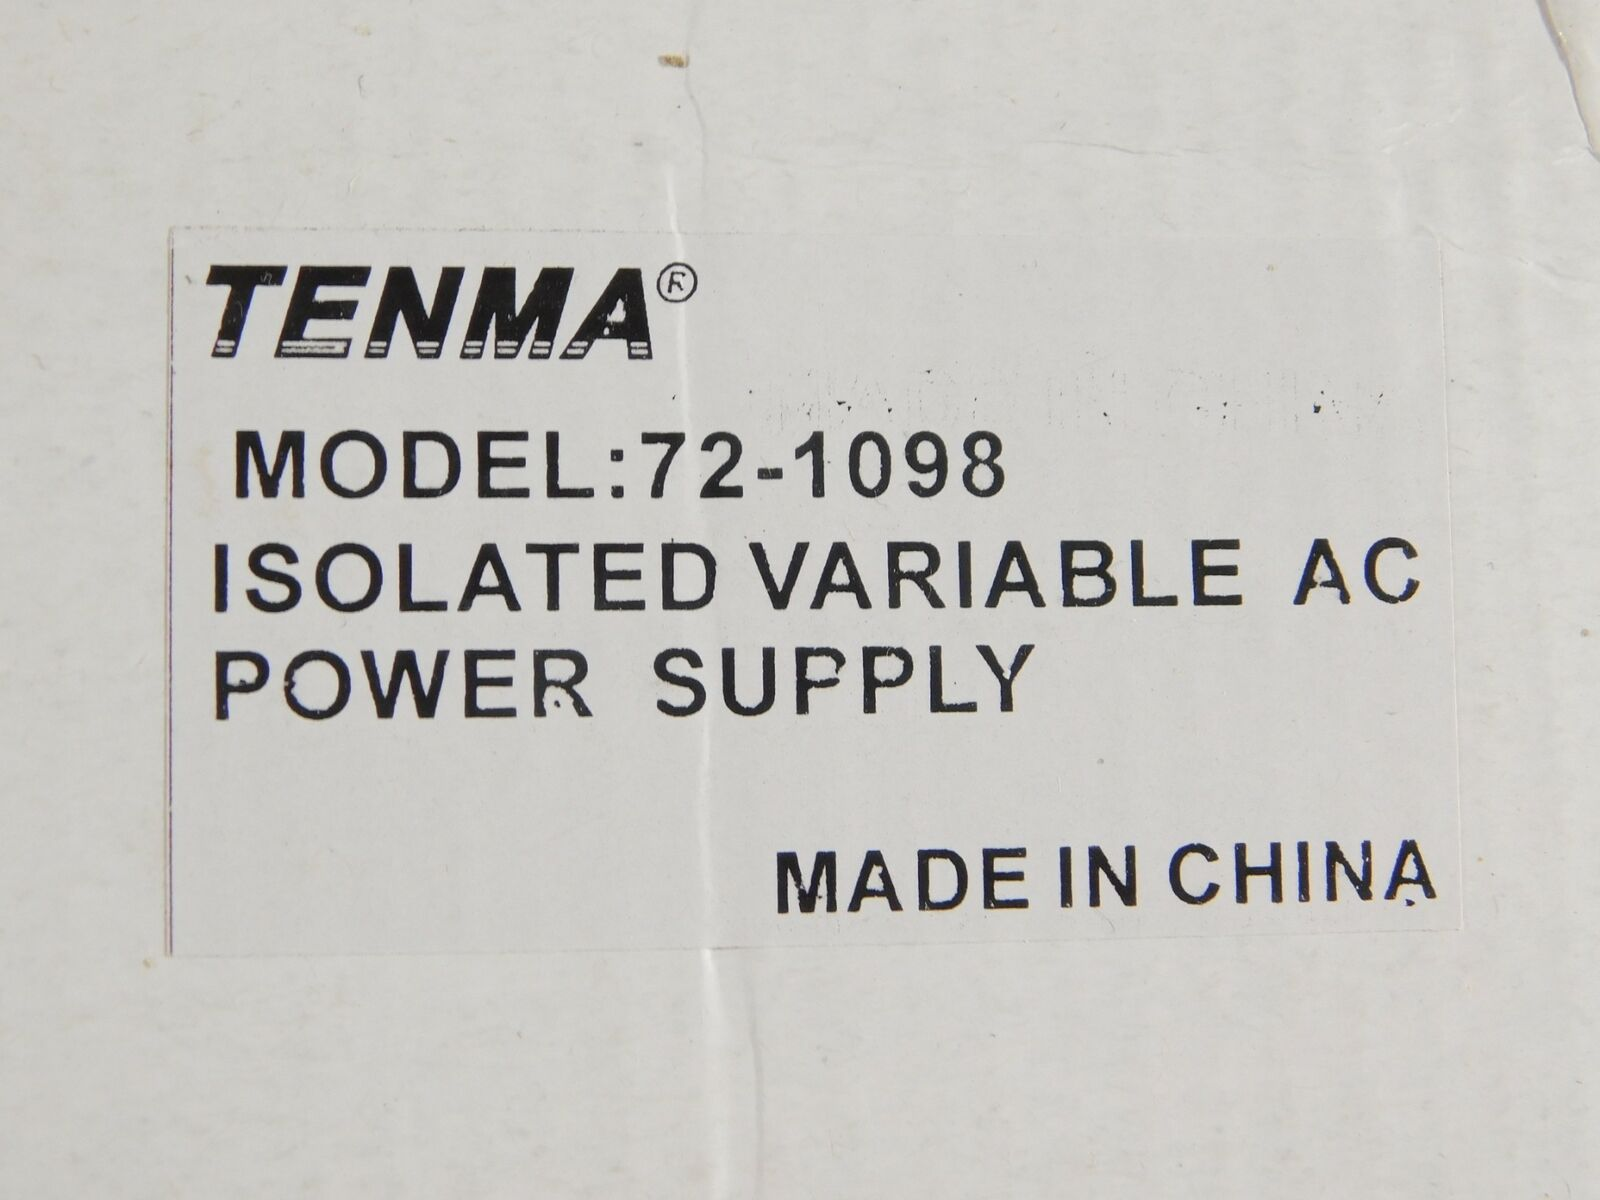 Tenma 72-1098 Isolated Variable AC Power Supply (new in box). Buy it now for 300.00